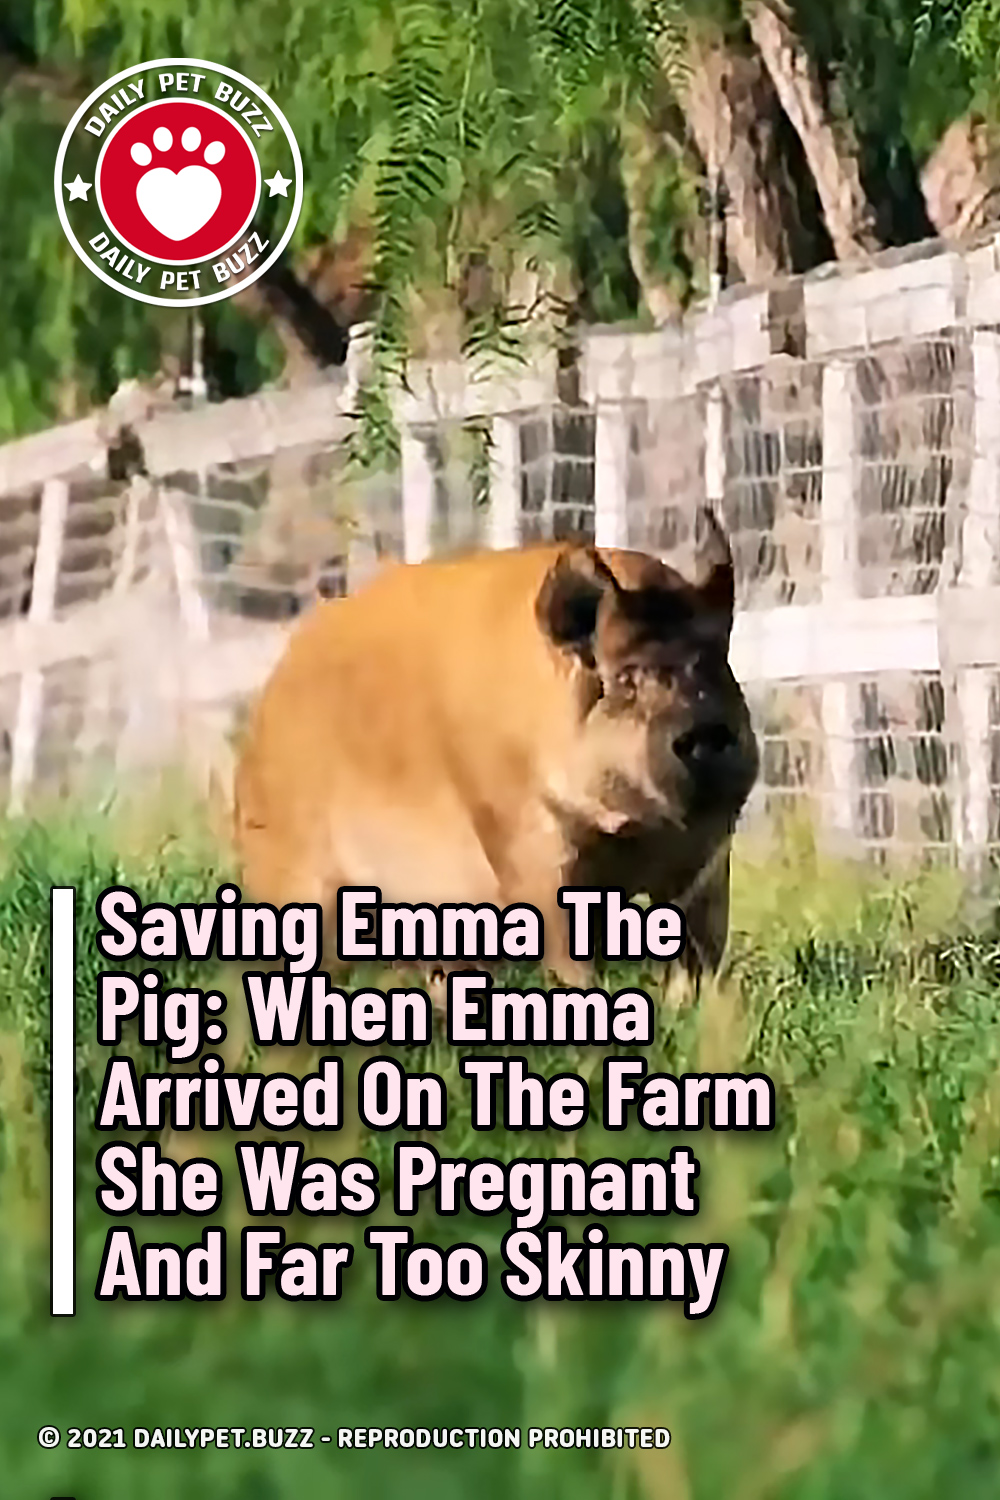 Saving Emma The Pig: When Emma Arrived On The Farm She Was Pregnant And Far Too Skinny